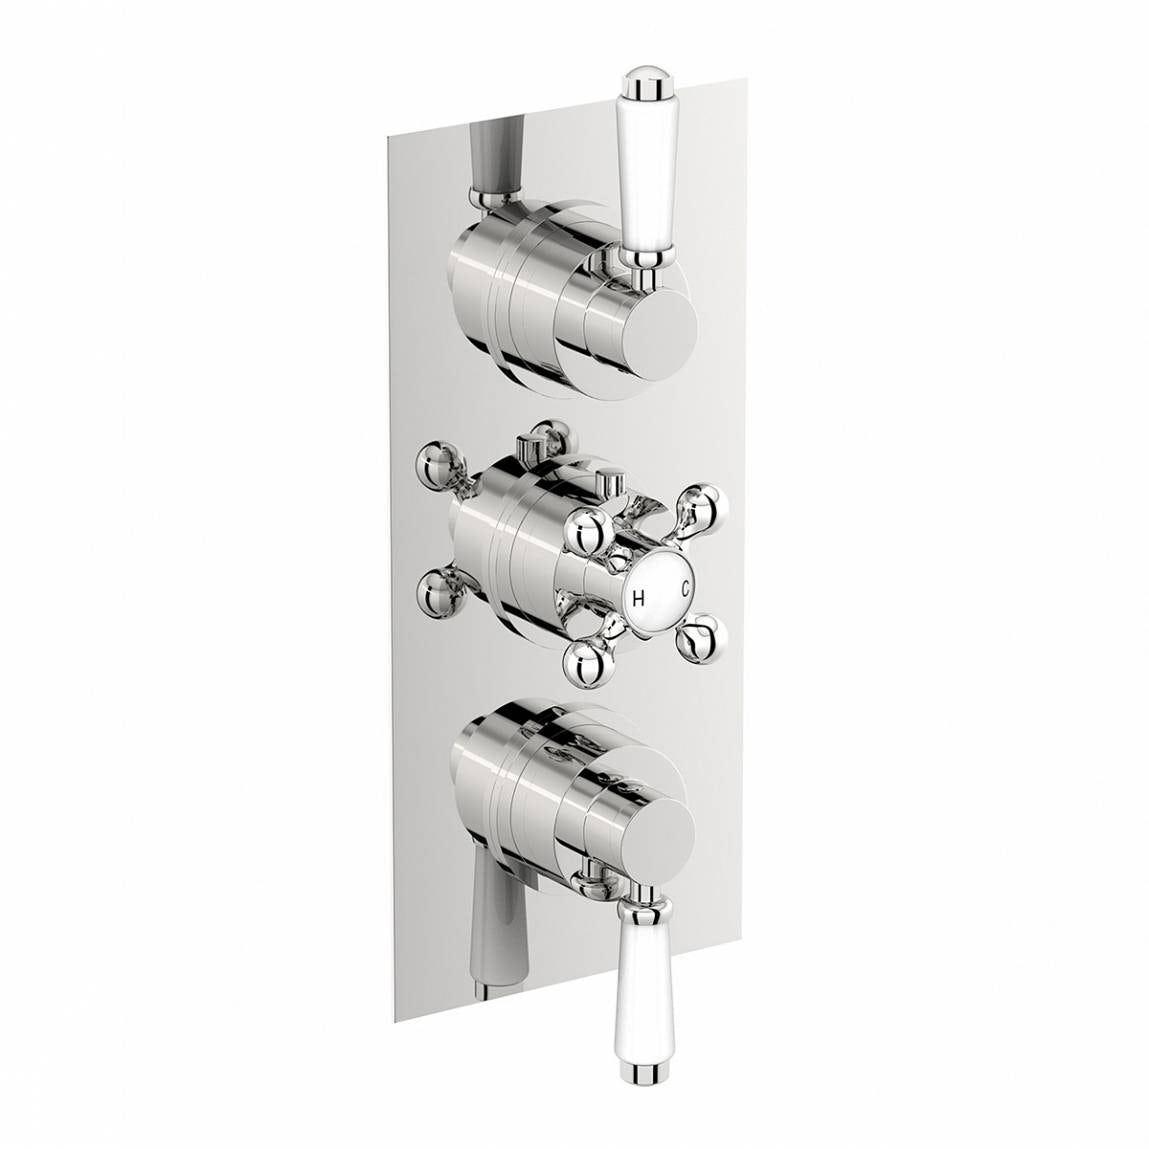 Image of The Bath Co. Traditional square triple thermostatic shower valve